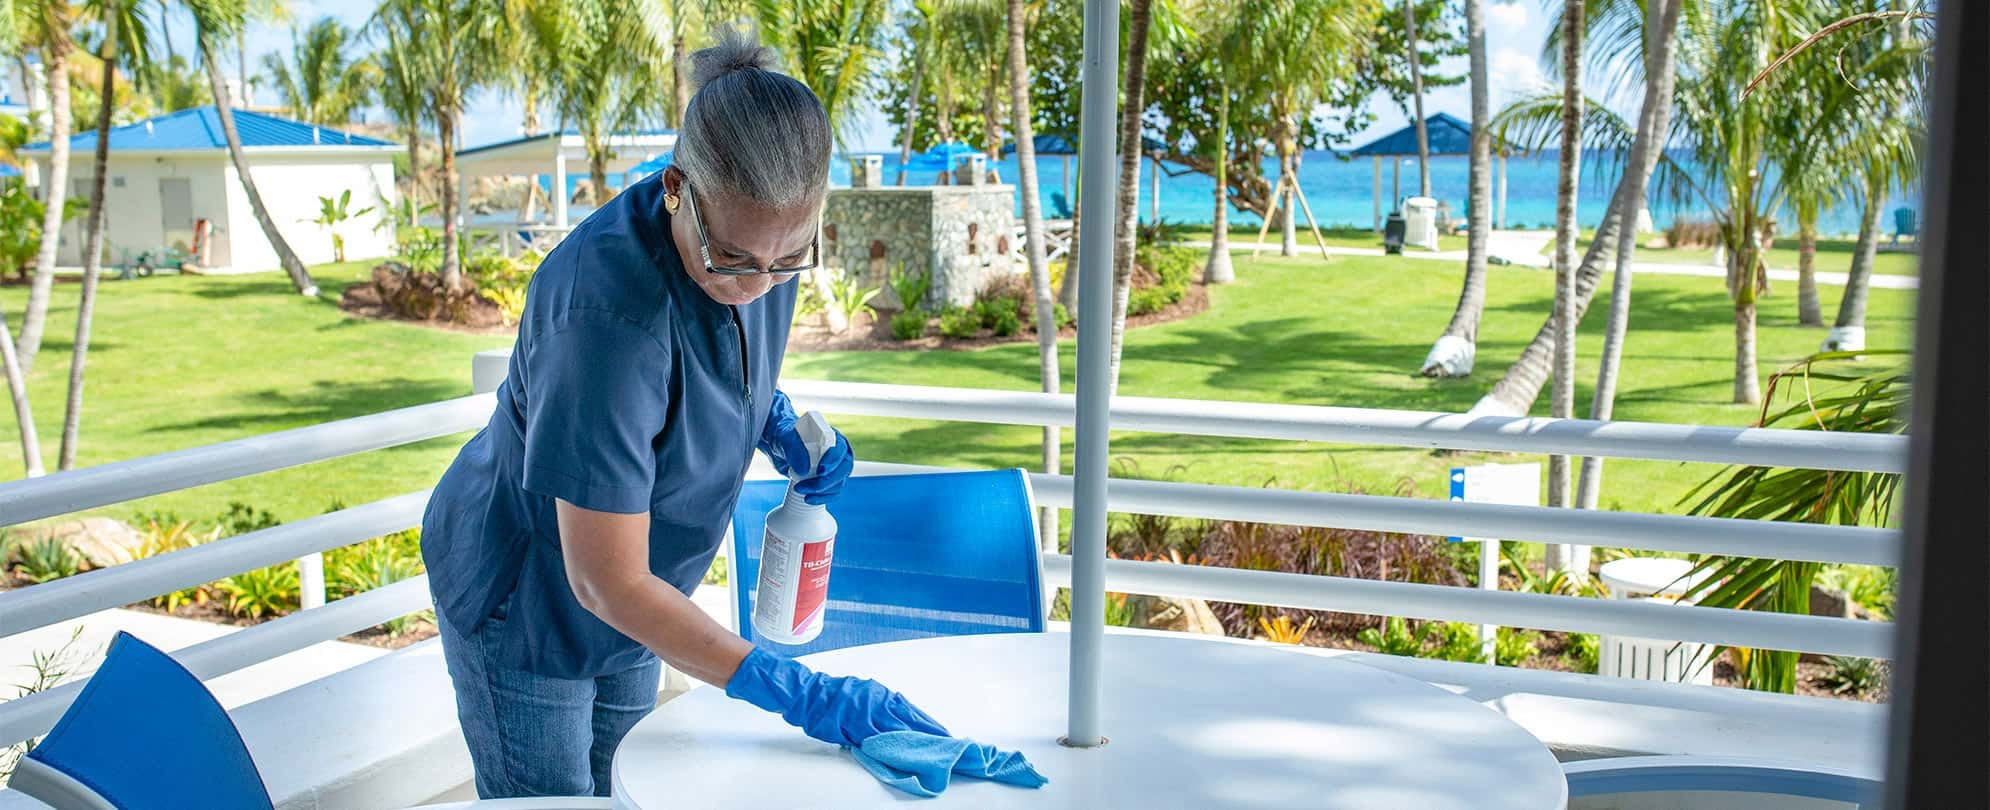 Female employee wearing a blue medical mask and gloves wipes an outdoor table at a Margaritaville Vacation Club resort.